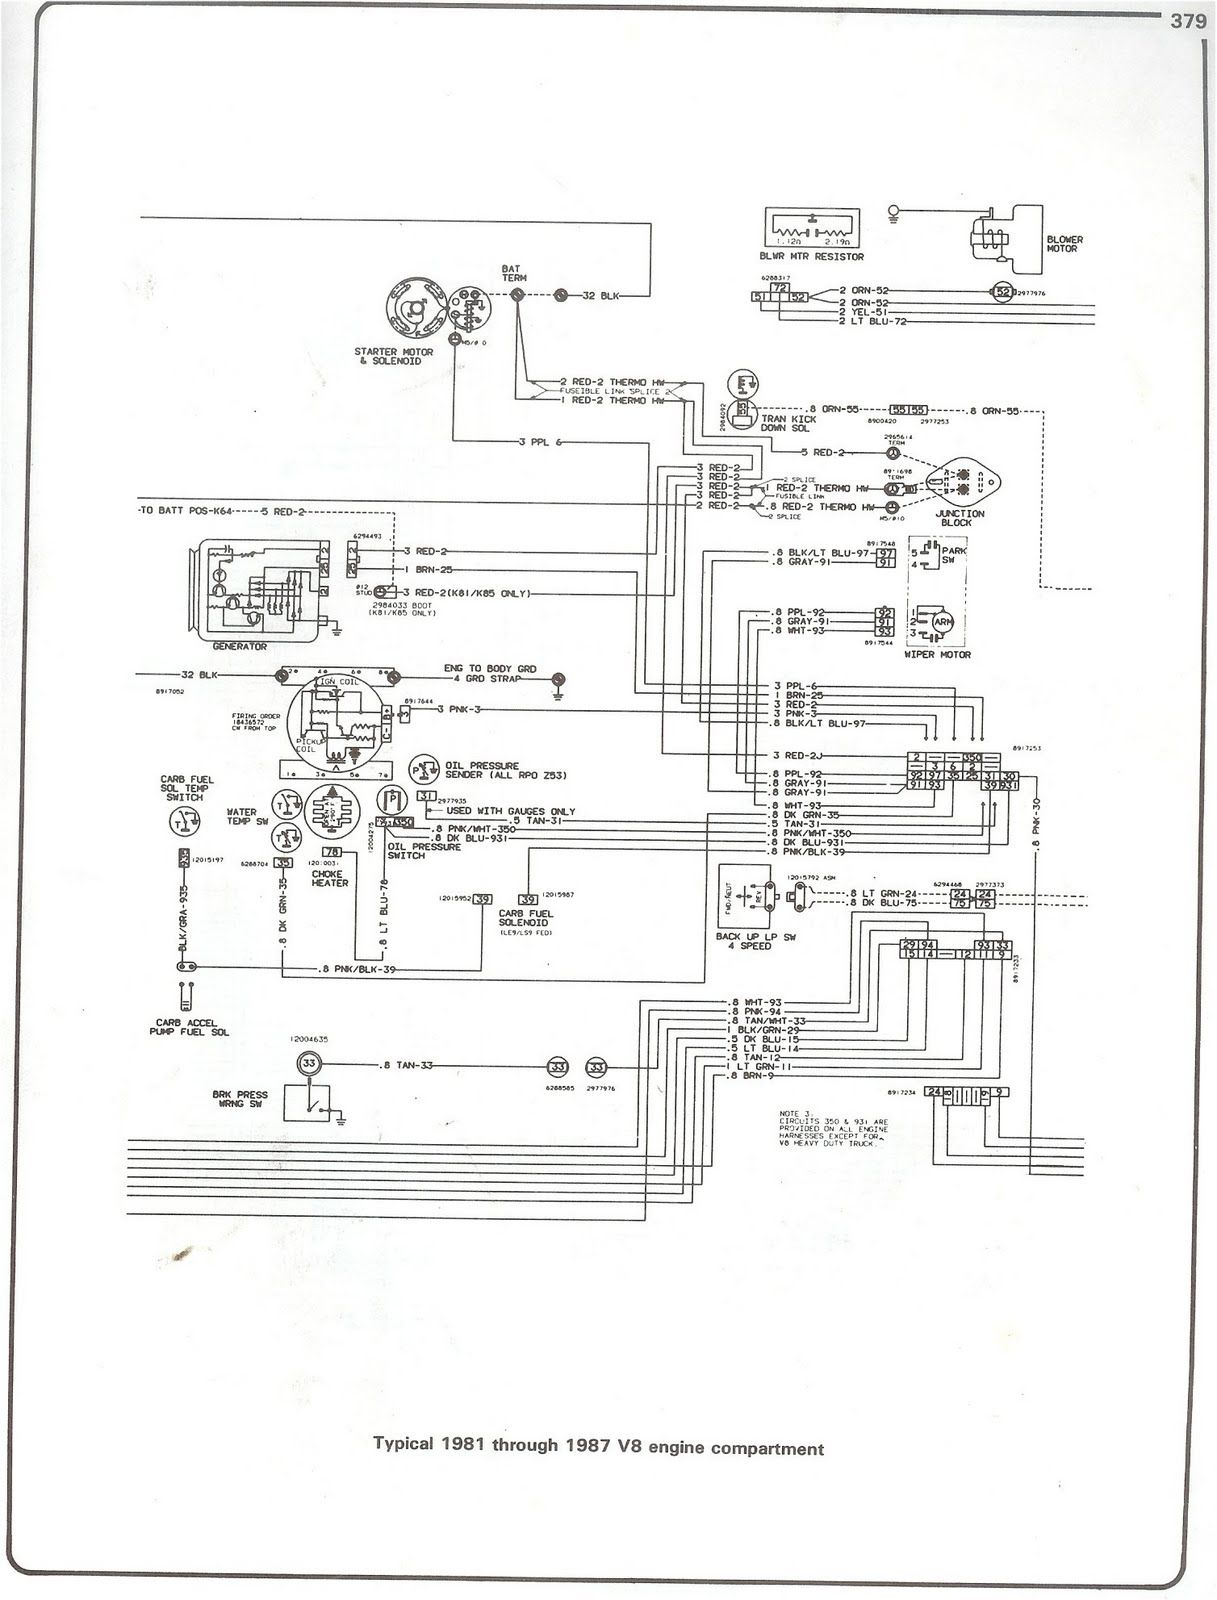 this is engine compartment wiring diagram for 1981 trough 1987 3 4 liter gm engine compartment diagram [ 1217 x 1600 Pixel ]